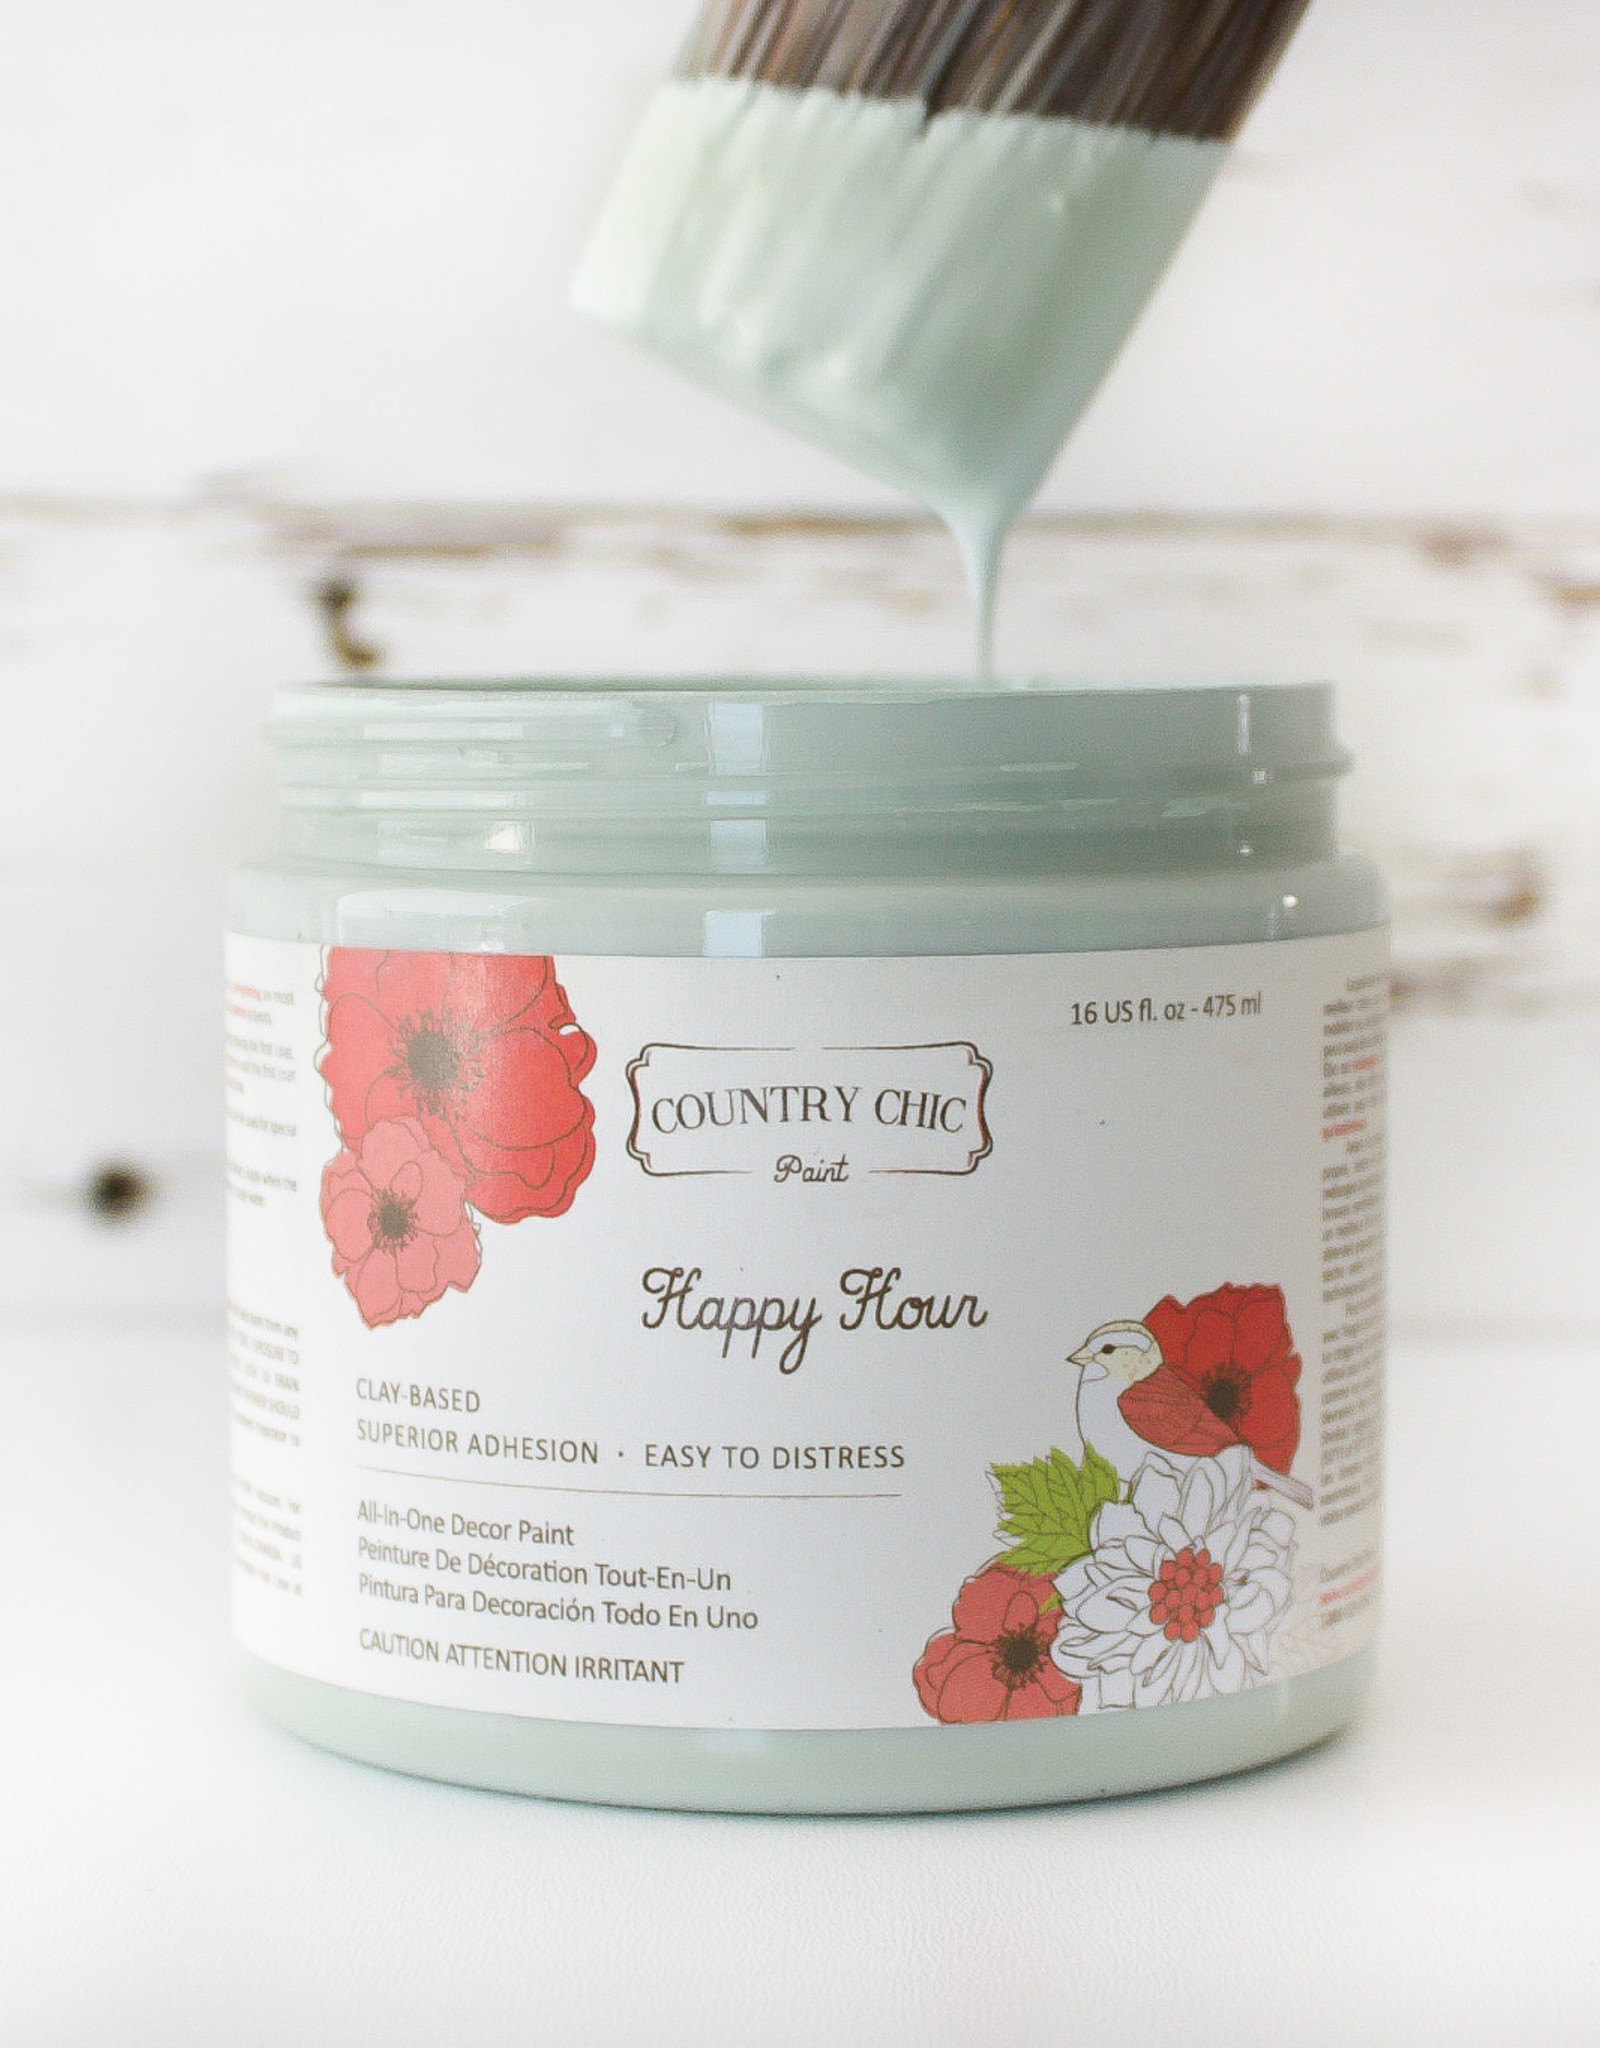 Country Chic Country Chic Paint Quart - 32oz Happy Hour